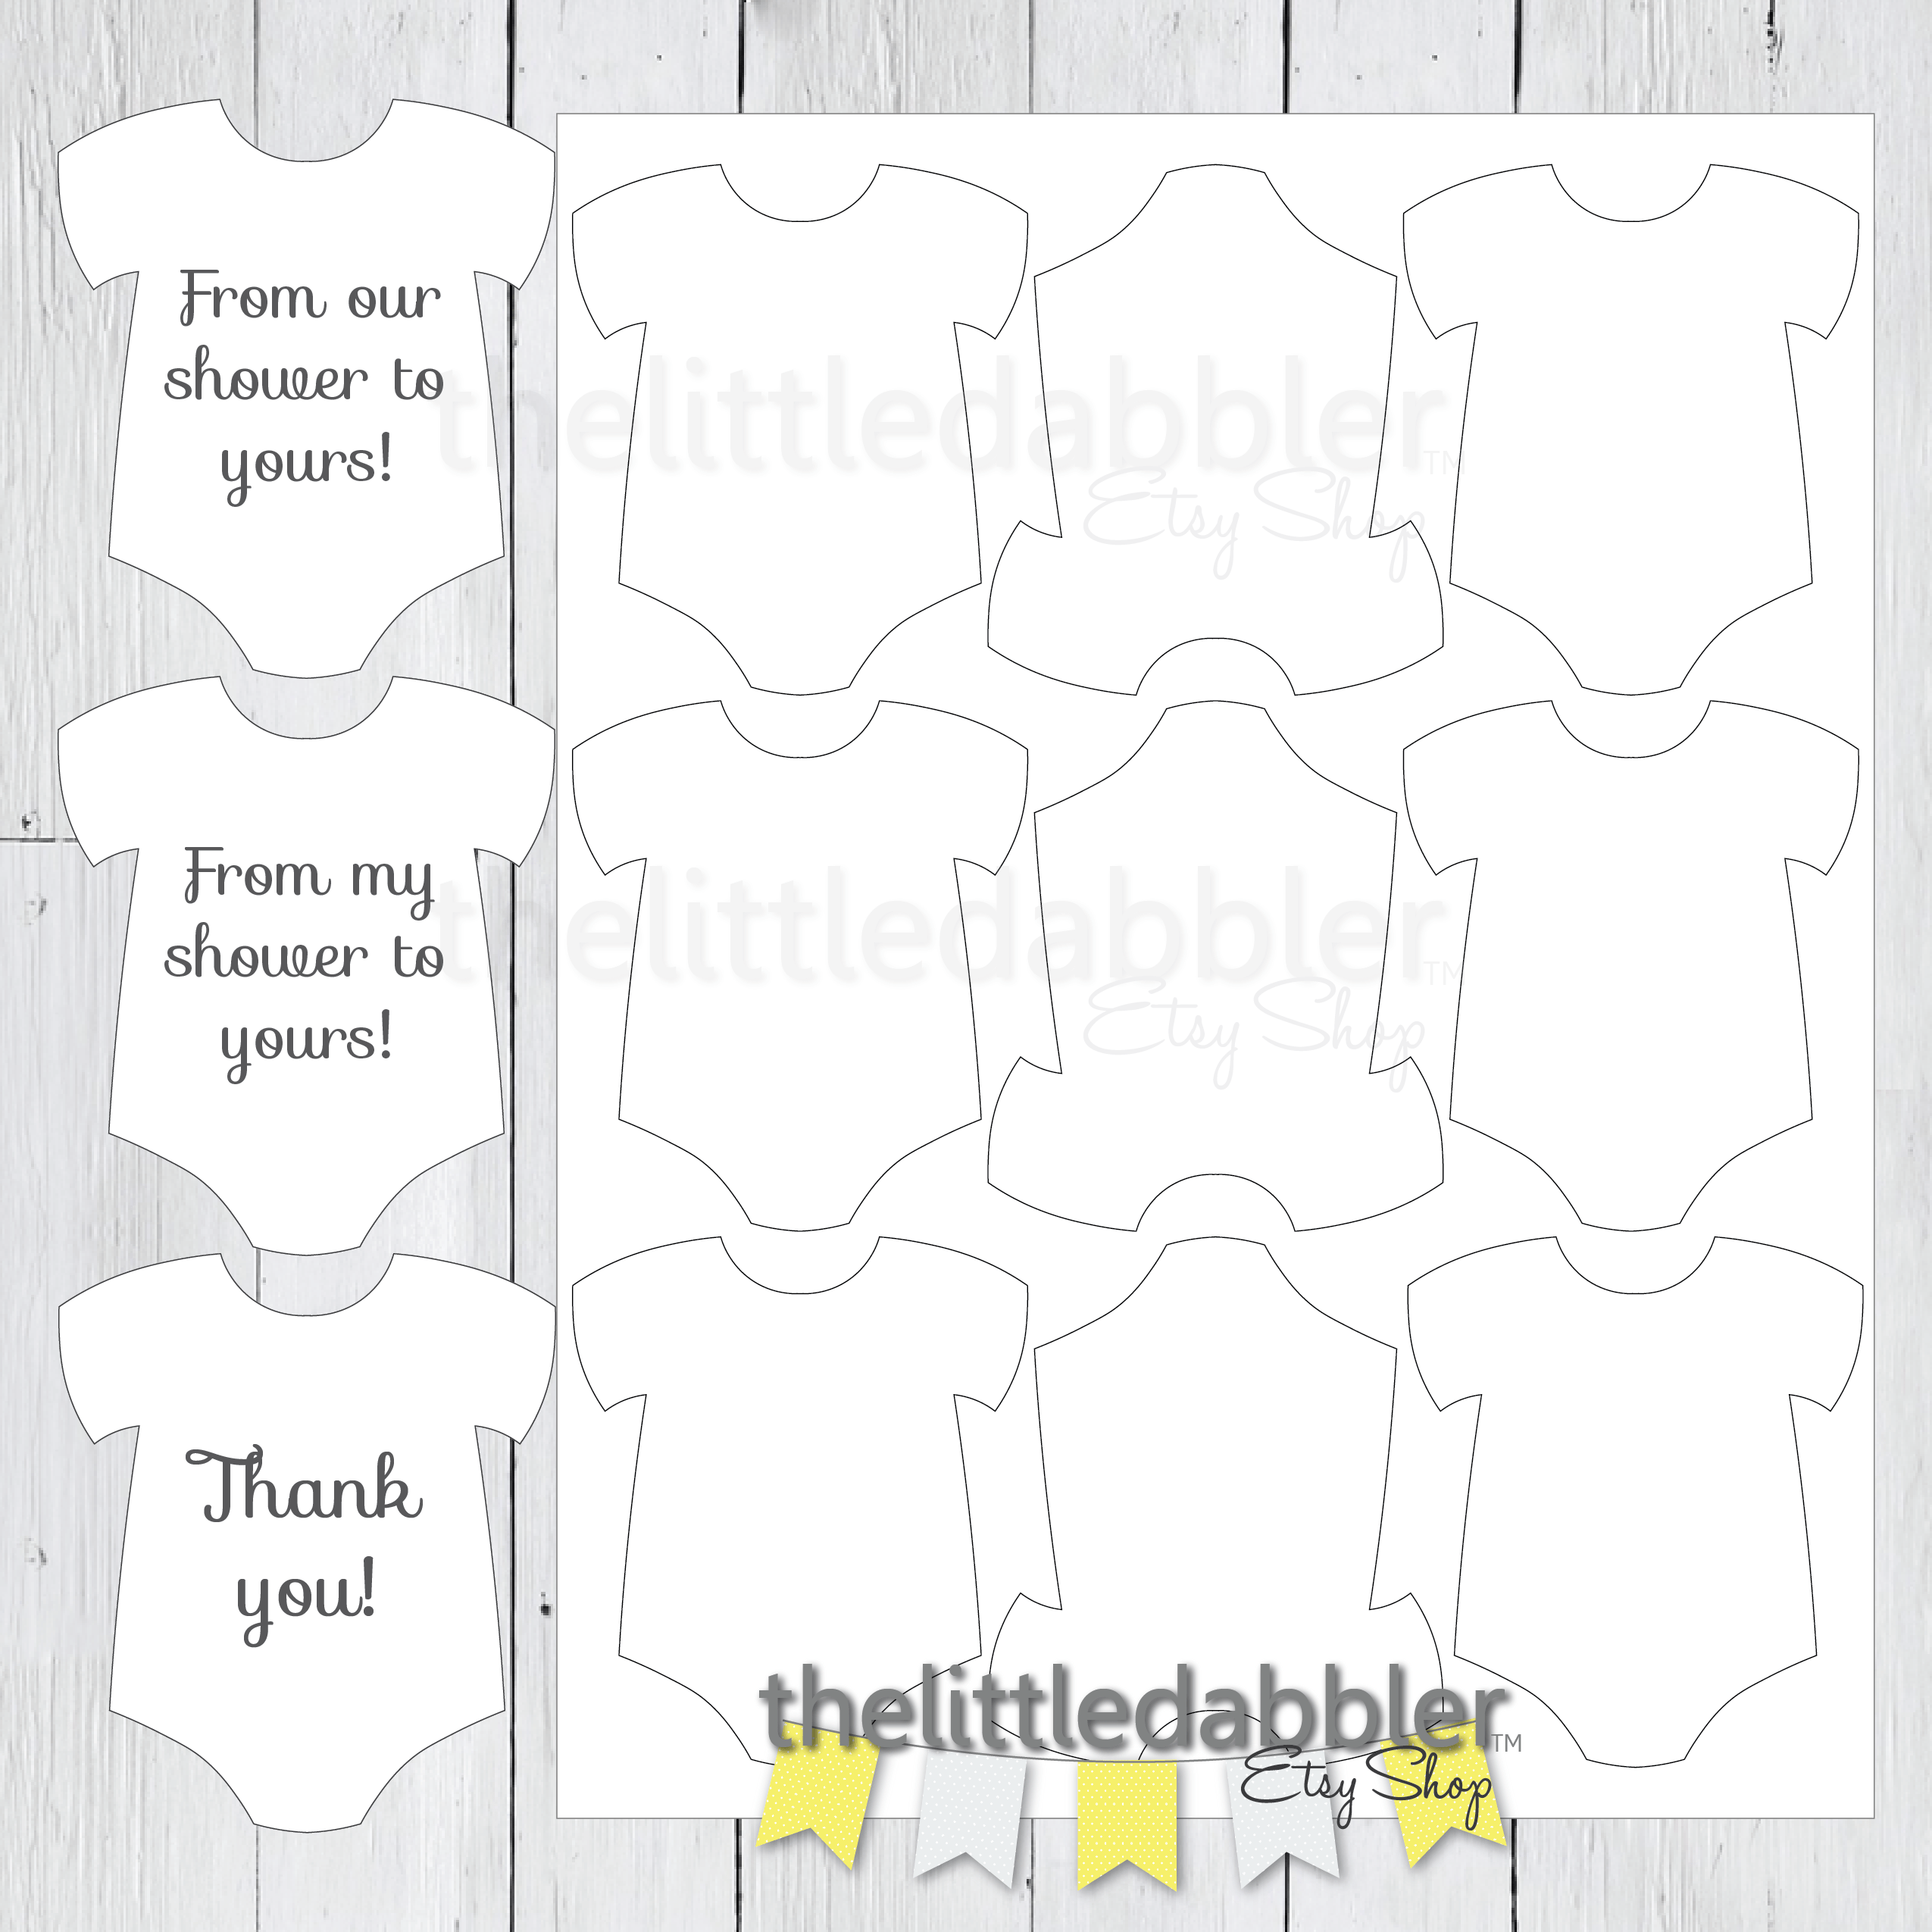 photo relating to Onesie Template Printable titled Child Onesie Templates thelittledabbler